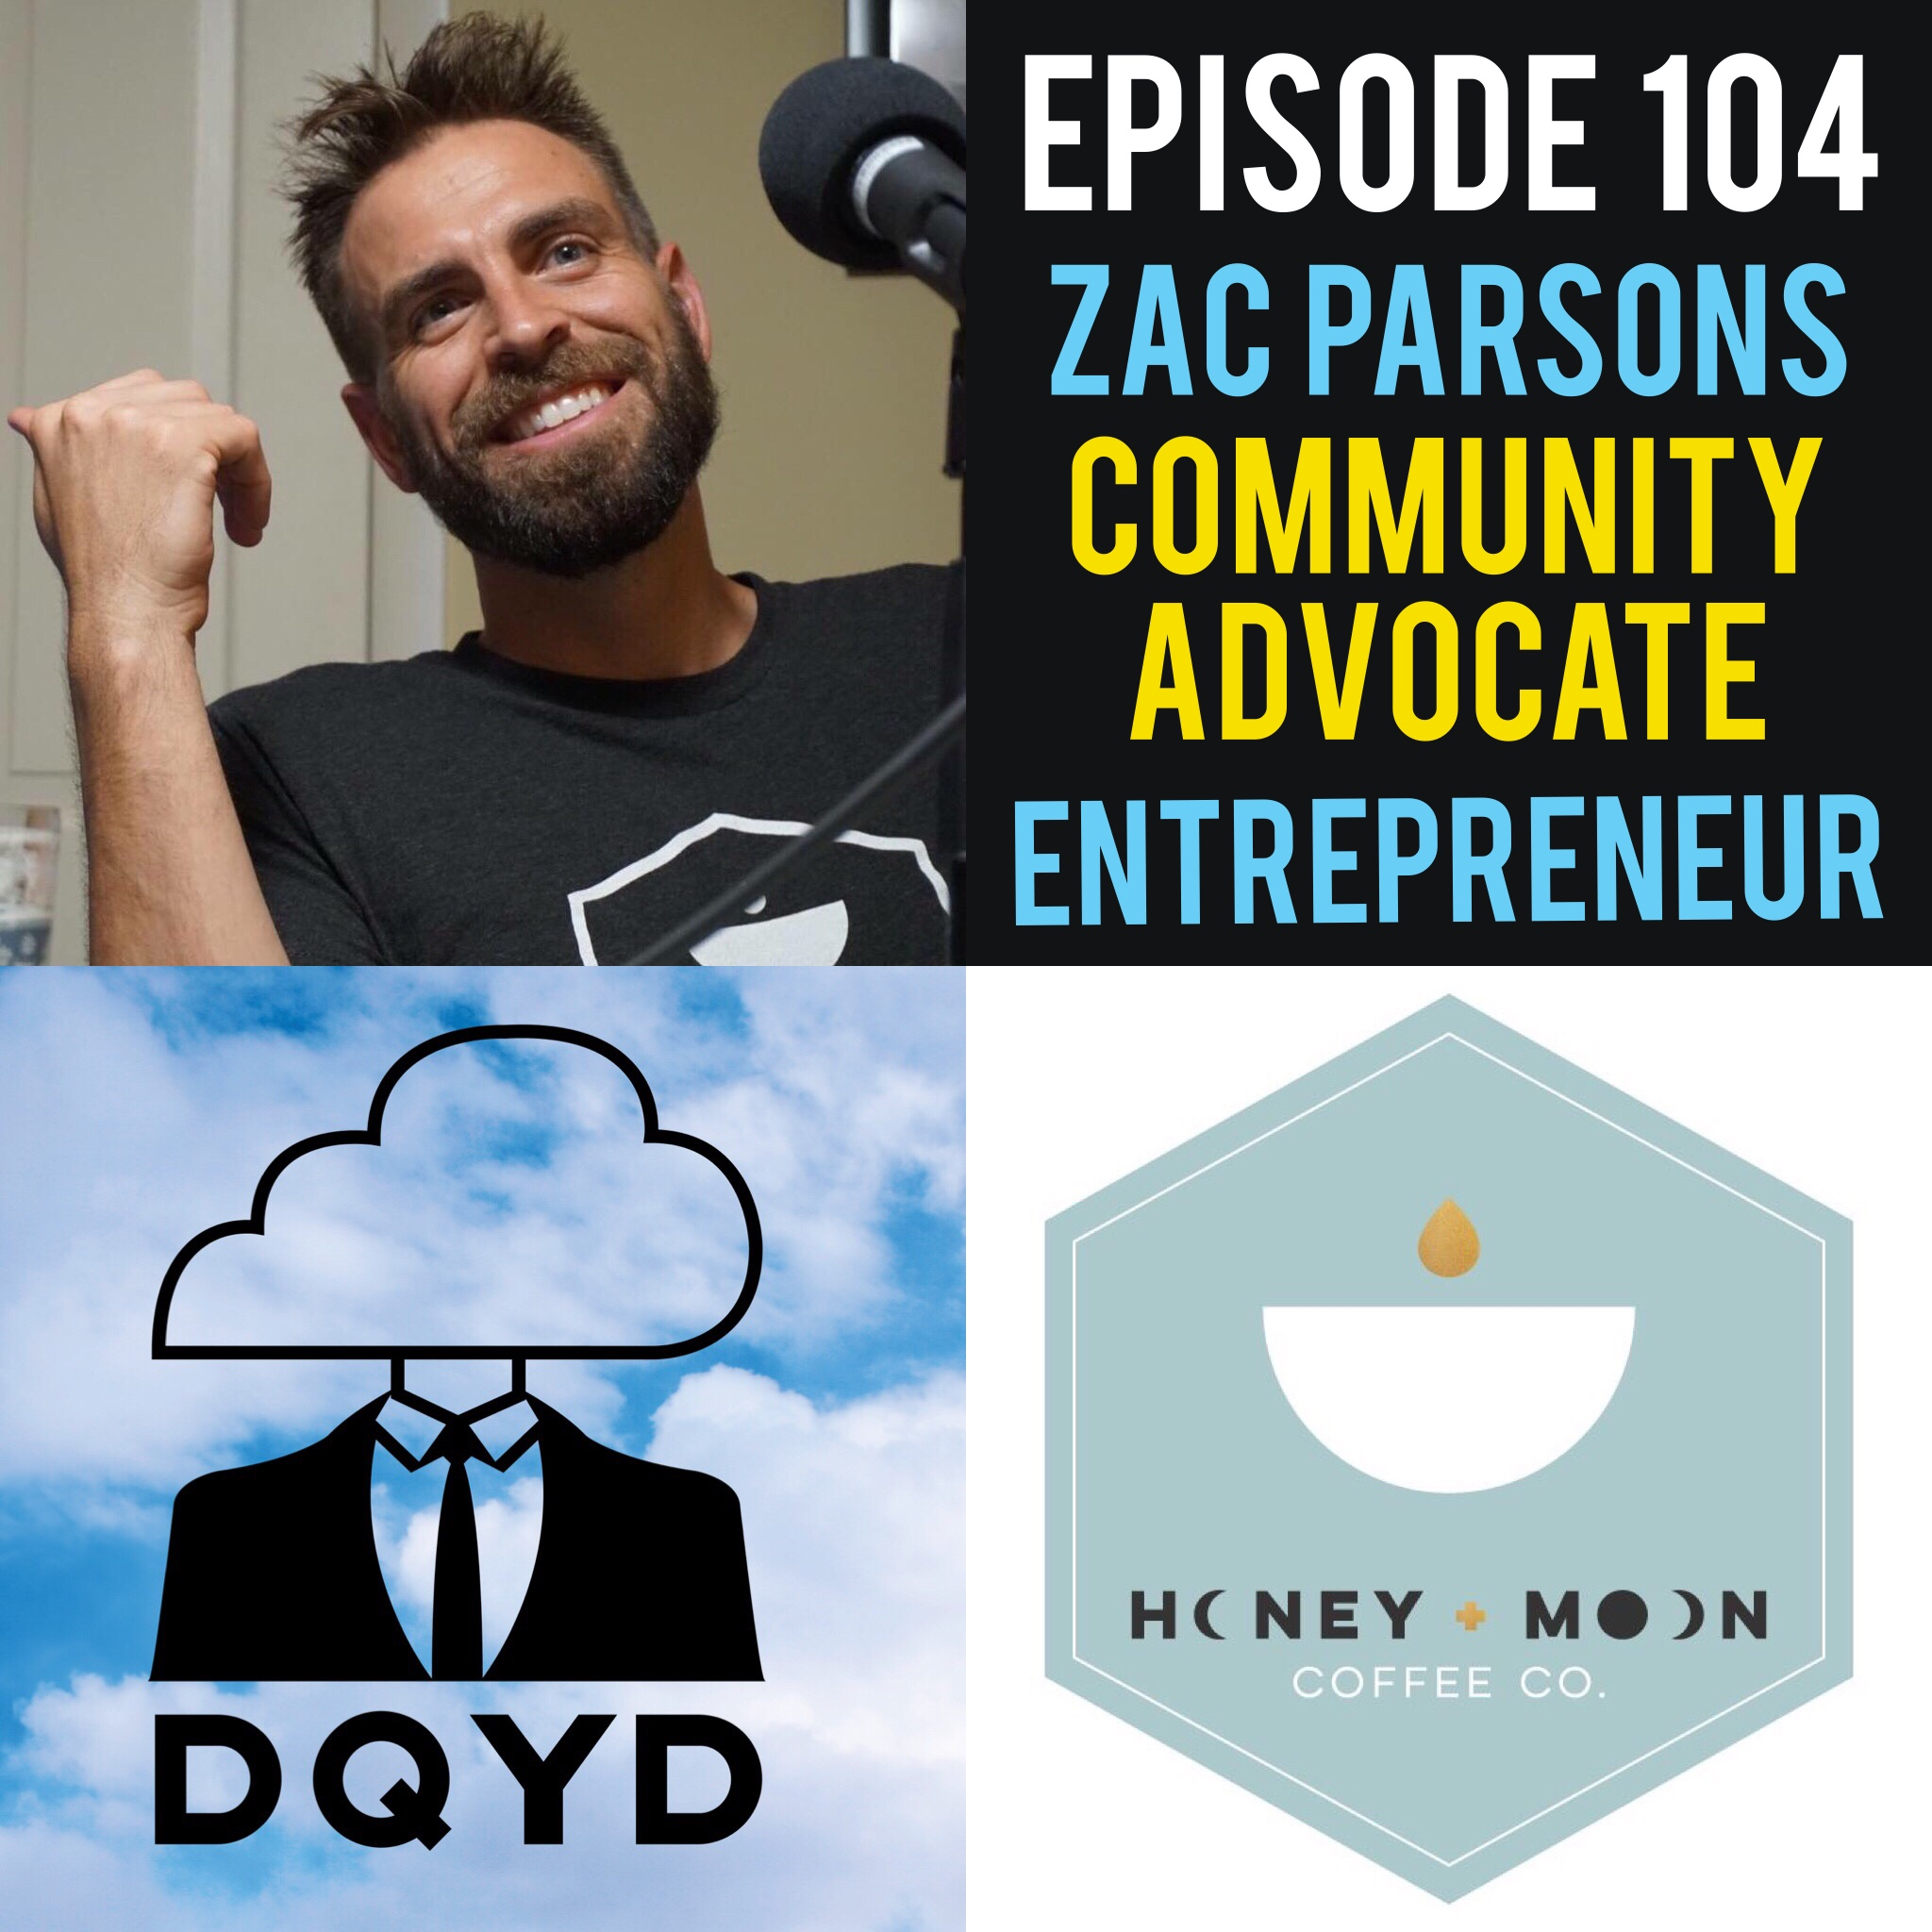 """Episode 104 with Community Advocate and Entrepreneur: Zac Parsons! If something positive is happening in the city of Evansville, Indiana chances are Zac Parsons may have something to do with it. Owner of the wonderful coffee shop Honeymoon Coffee Co, university professor and contributor to TedxEvansville, Zac keeps his plate fuller than most!  Song of the week is """"Strangers"""" by the melodic Vesper Days! Find more of her stuff by visiting: https://soundcloud.com/vesperdays"""